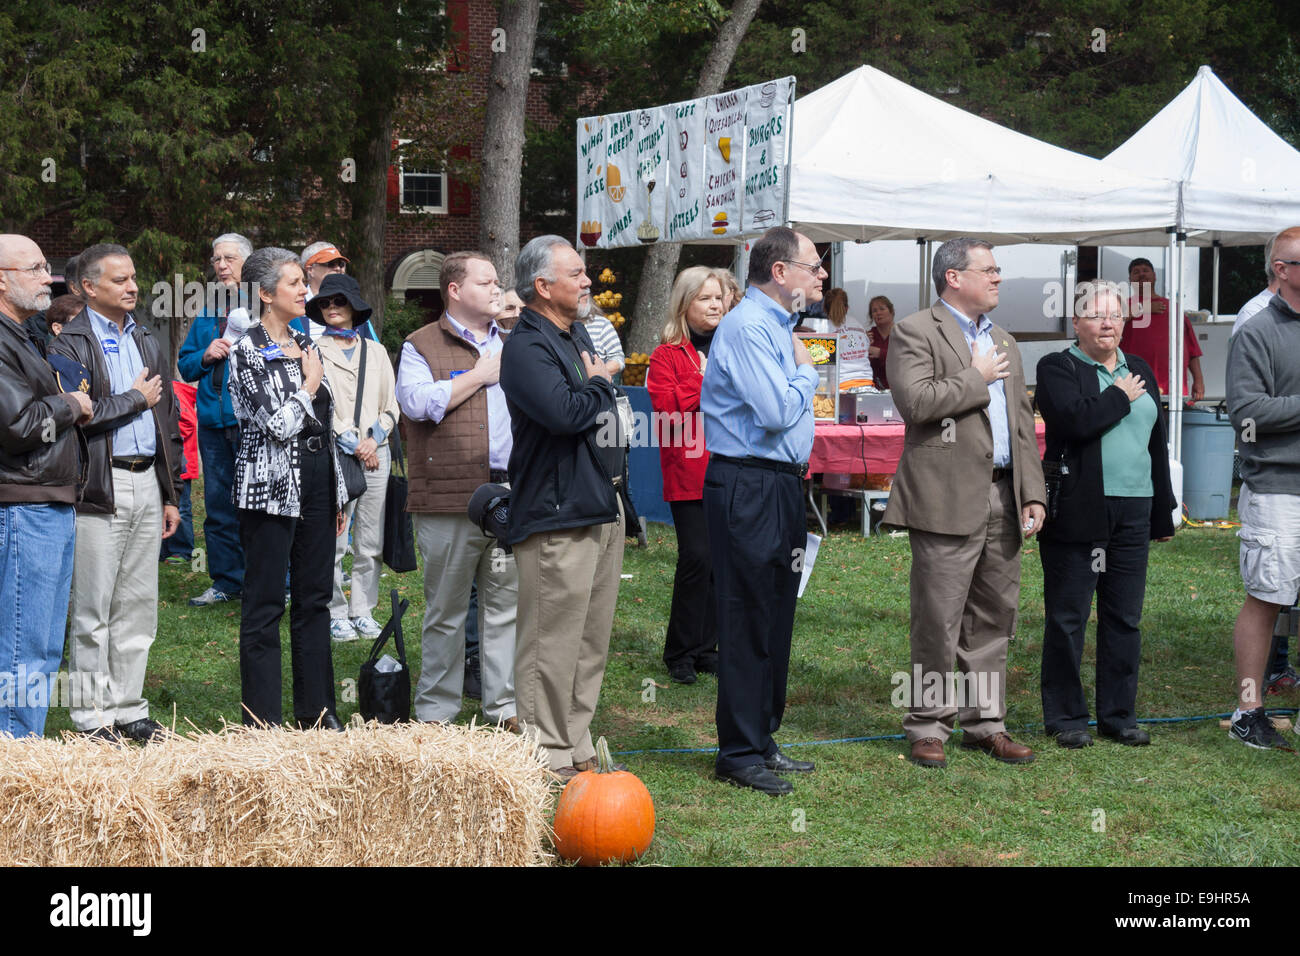 Dignitaries standing at attention for the National Anthem and Pledge of Allegiance, Gaithersburg, Maryland, Kentlands - Stock Image